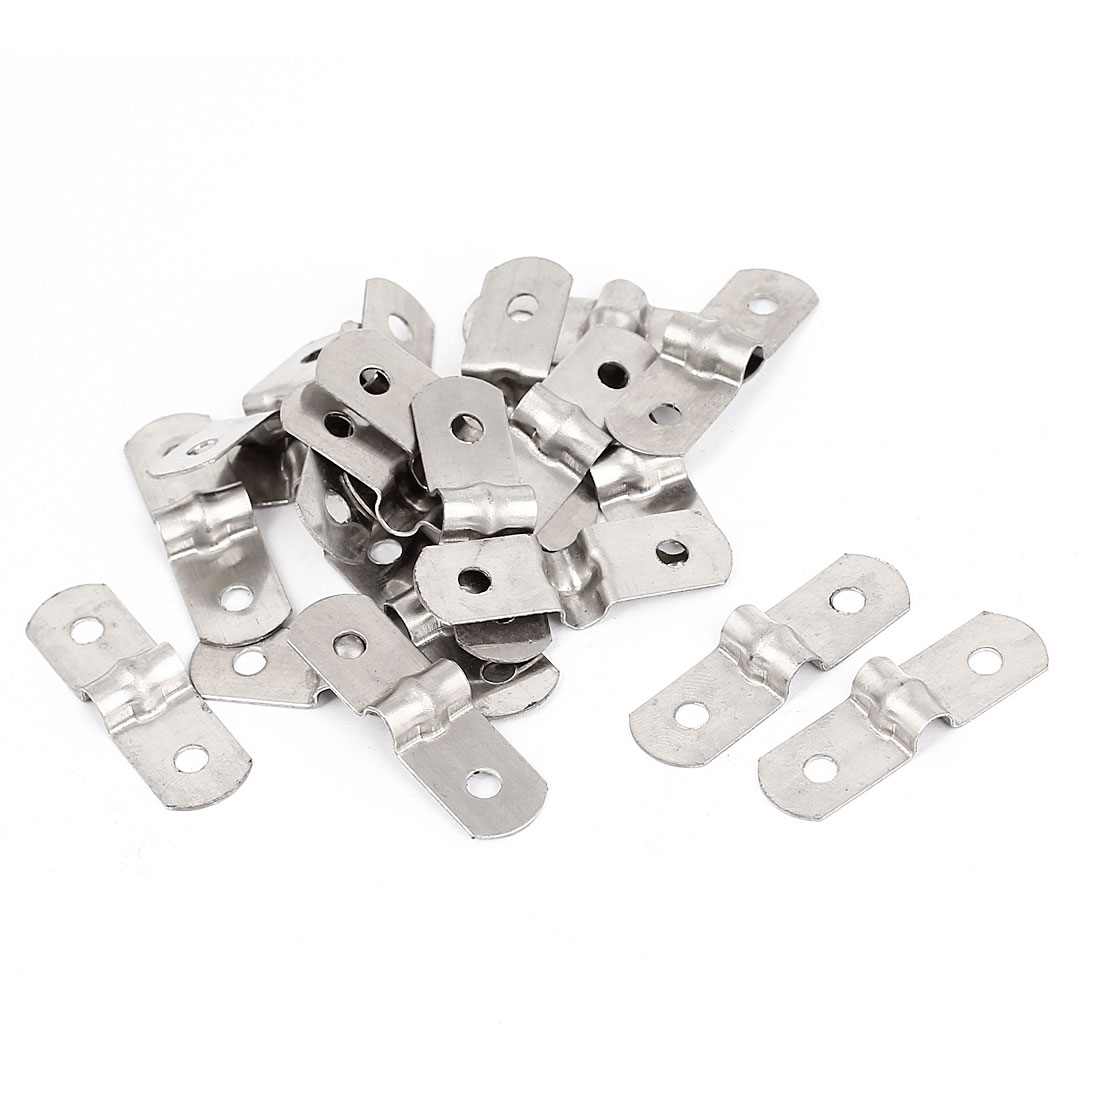 20pcs 2-Hole Metal Rigid Conduit Pipe Straps Clips Clamps for 5mm Dia Tube